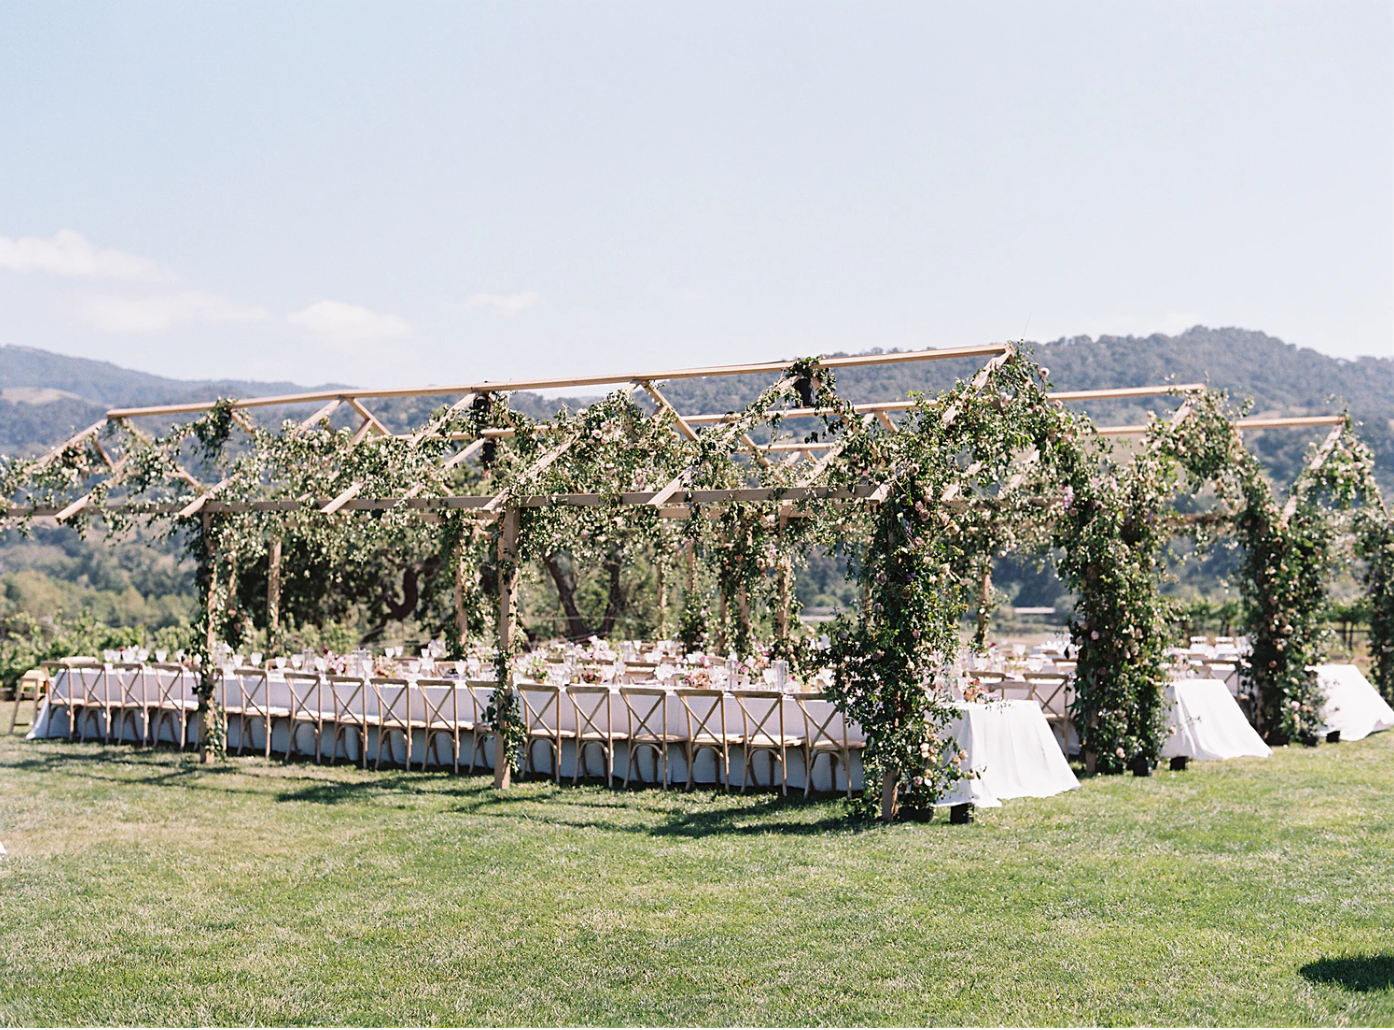 custom pergolas were fabricated and then covered in local roses -